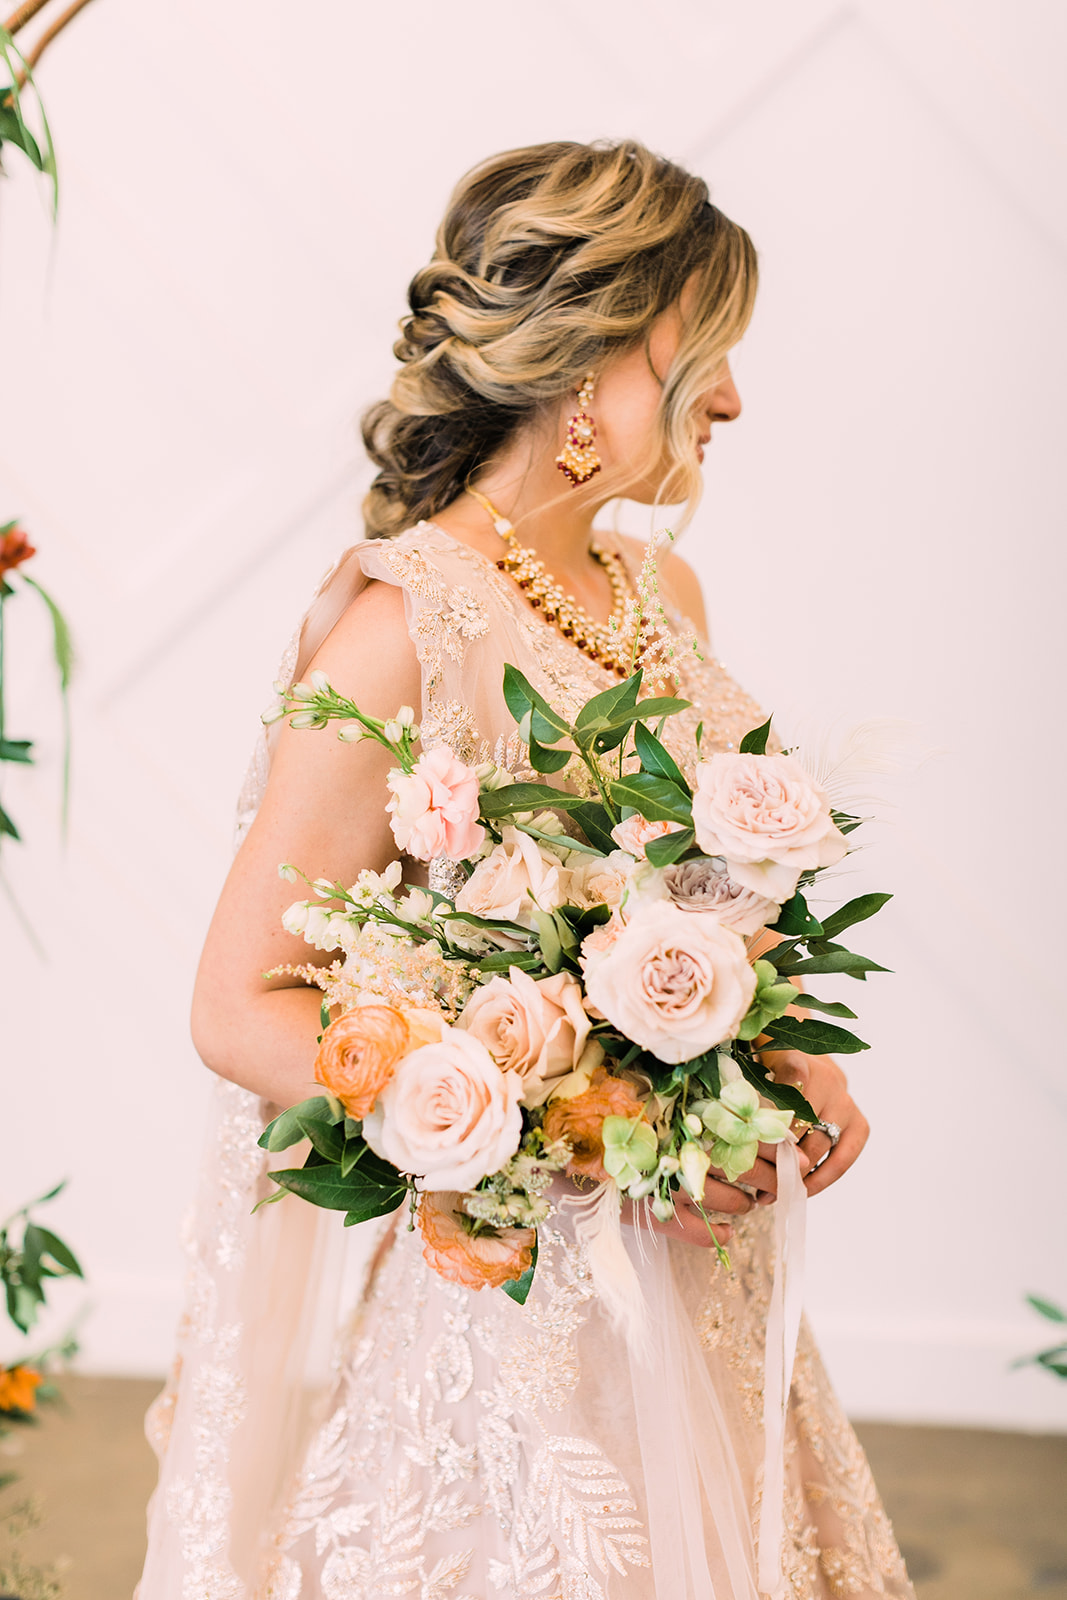 peachy whimiscal bouquet  anokiart photography